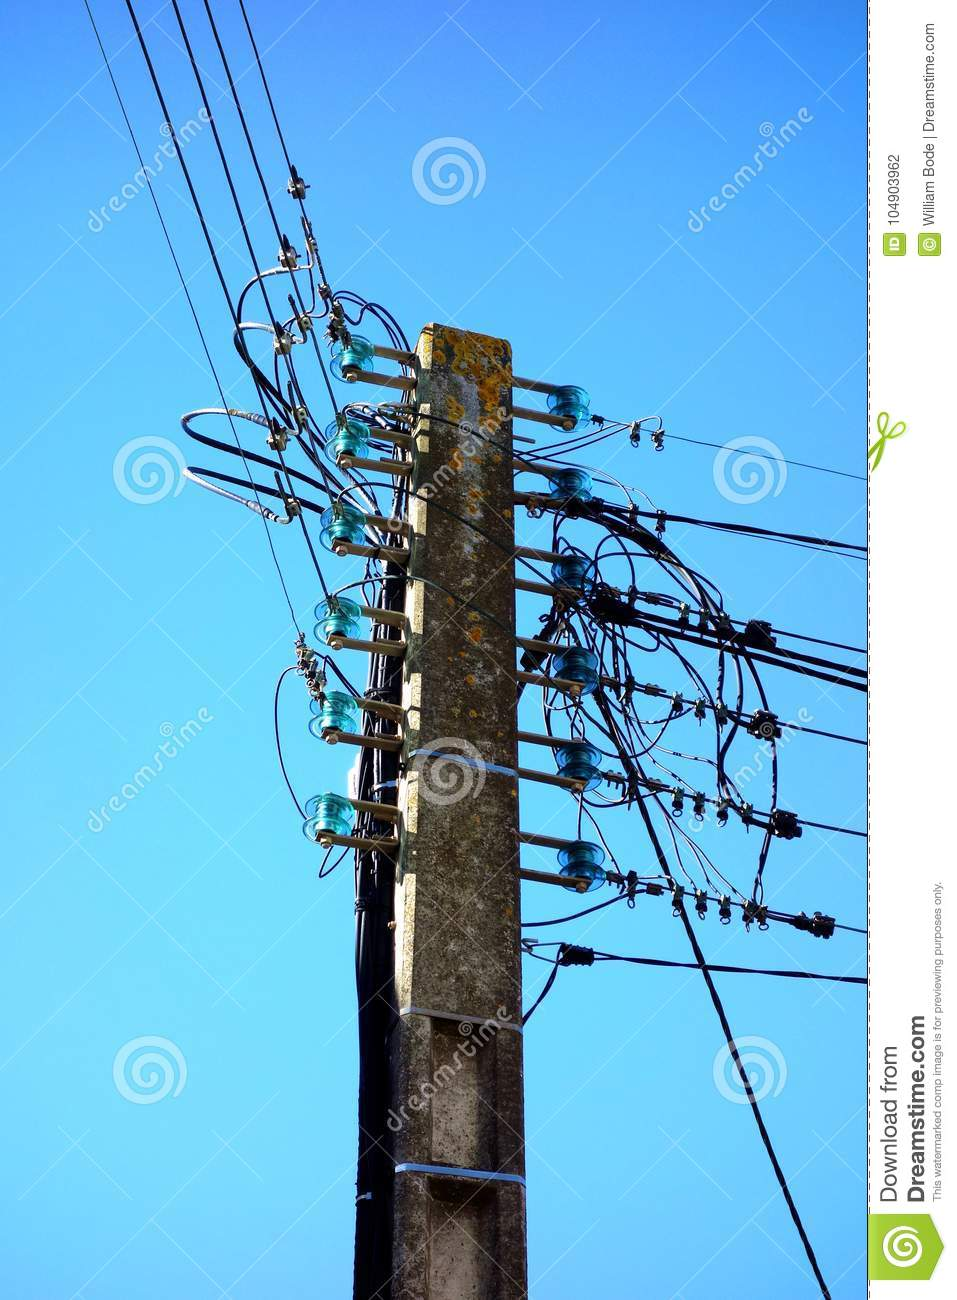 electric pole with old glass insulators stock photo